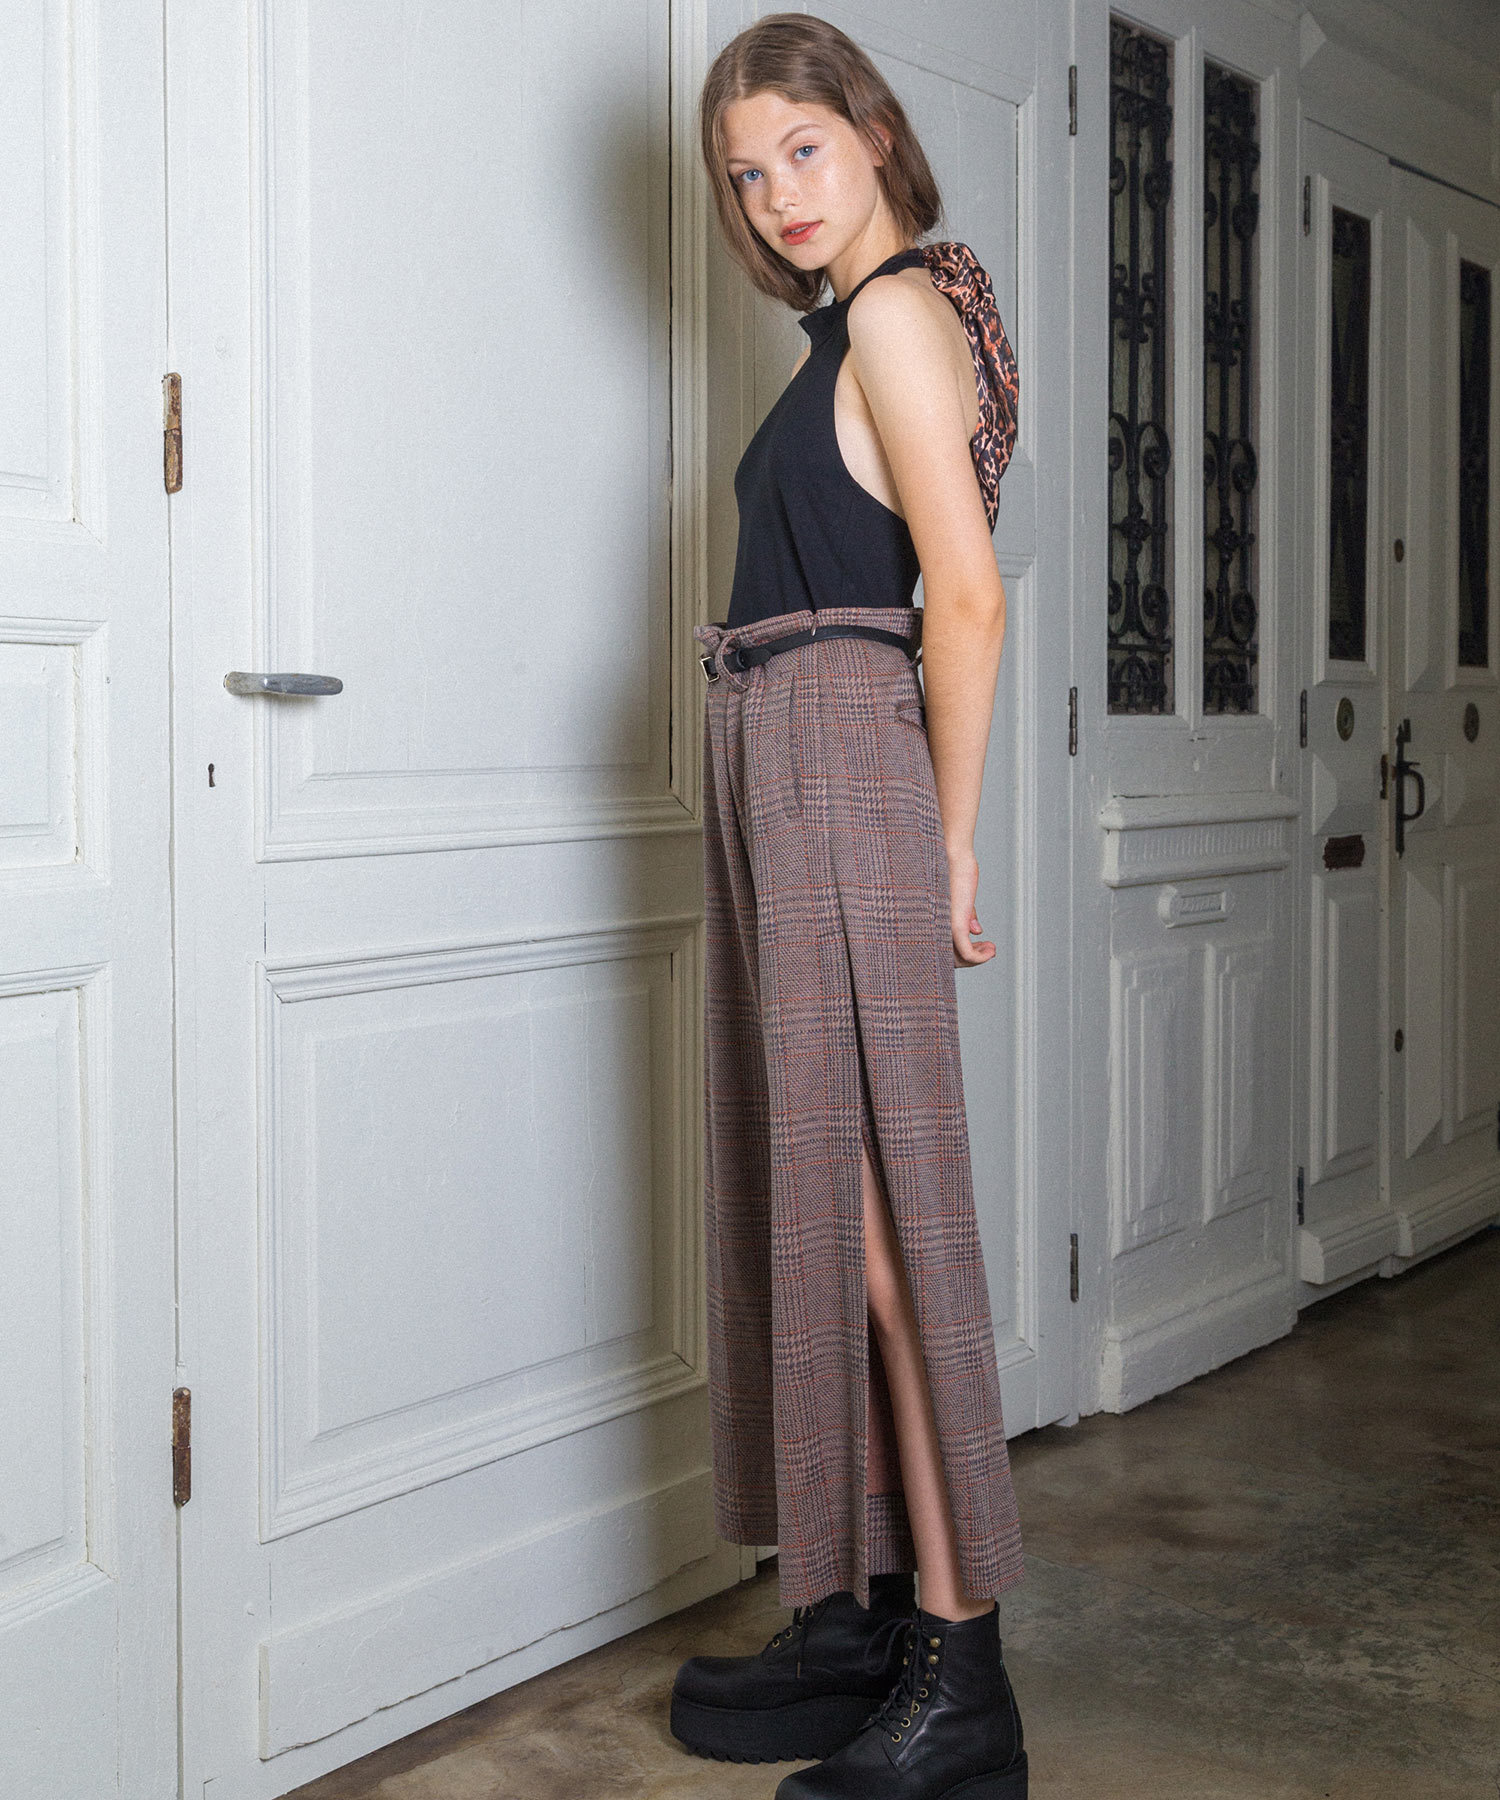 df19SS-22 SLIT WIDE PANTS - CHECK